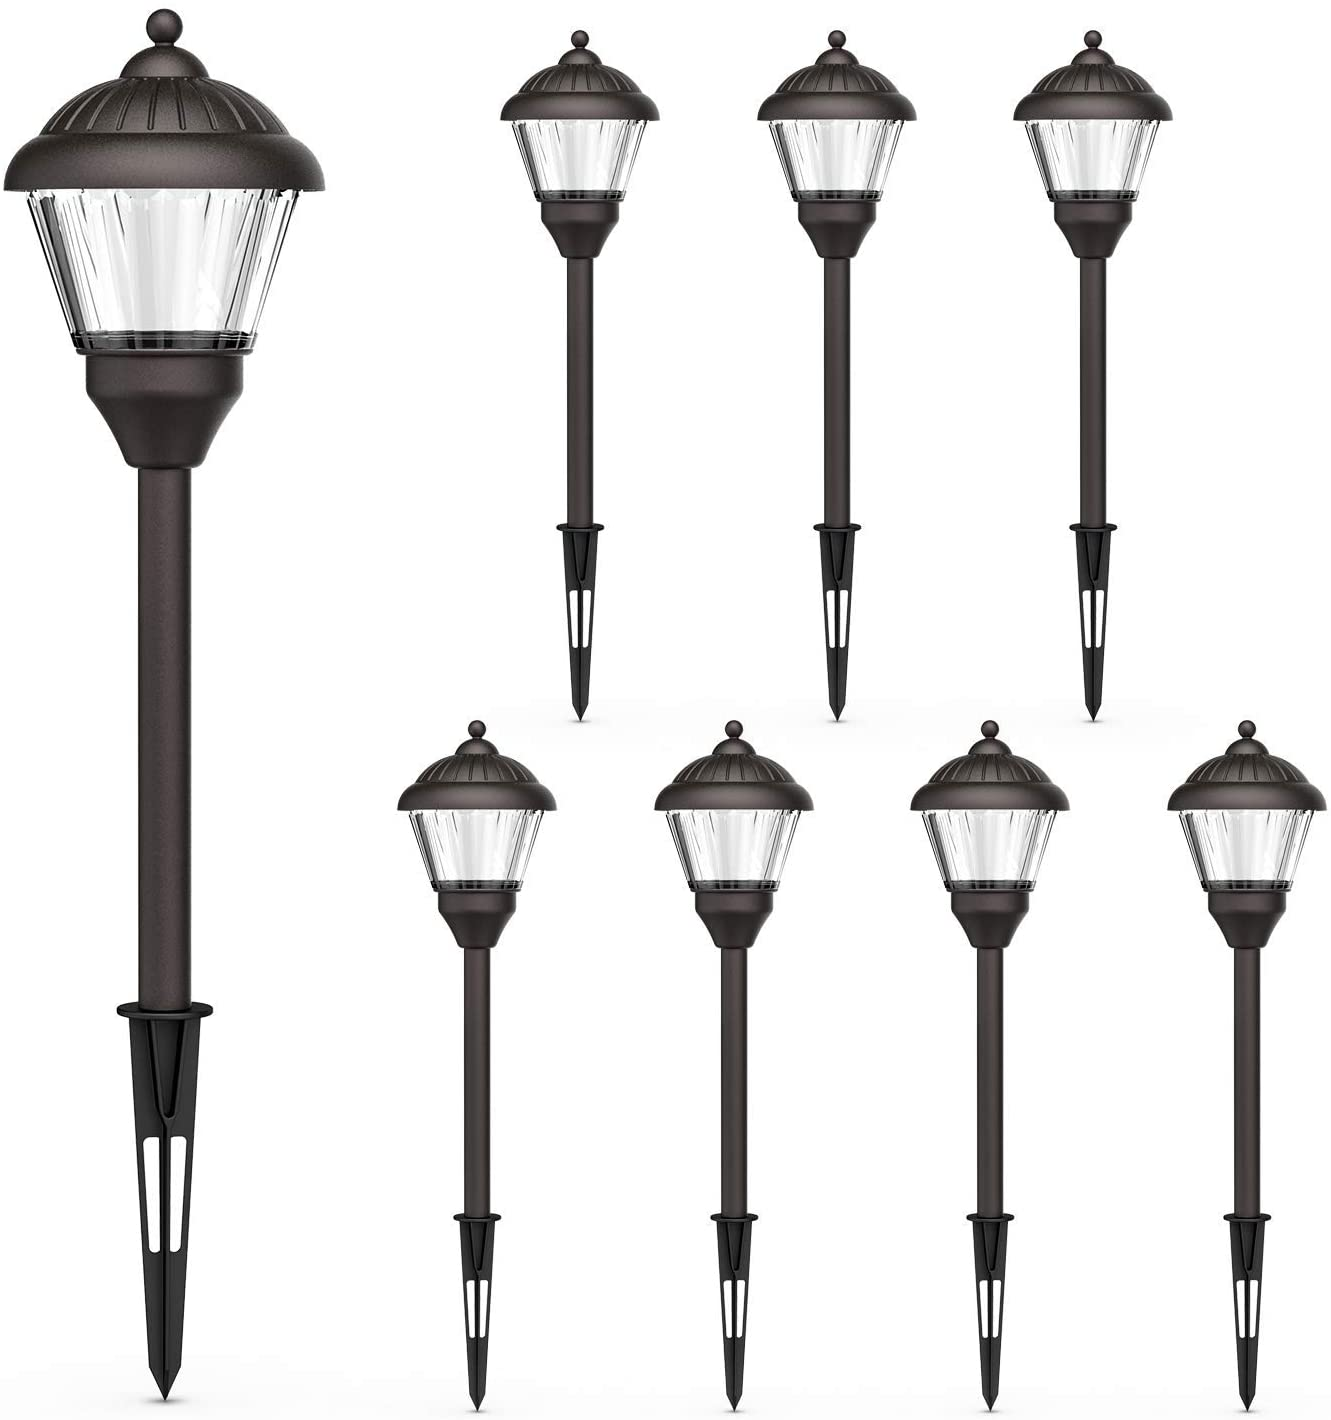 goodsmann 8 pack landscape lighting low voltage path lights led 1 5 watt outdoor lights with metal spike and connector 100 lumens for garden patio